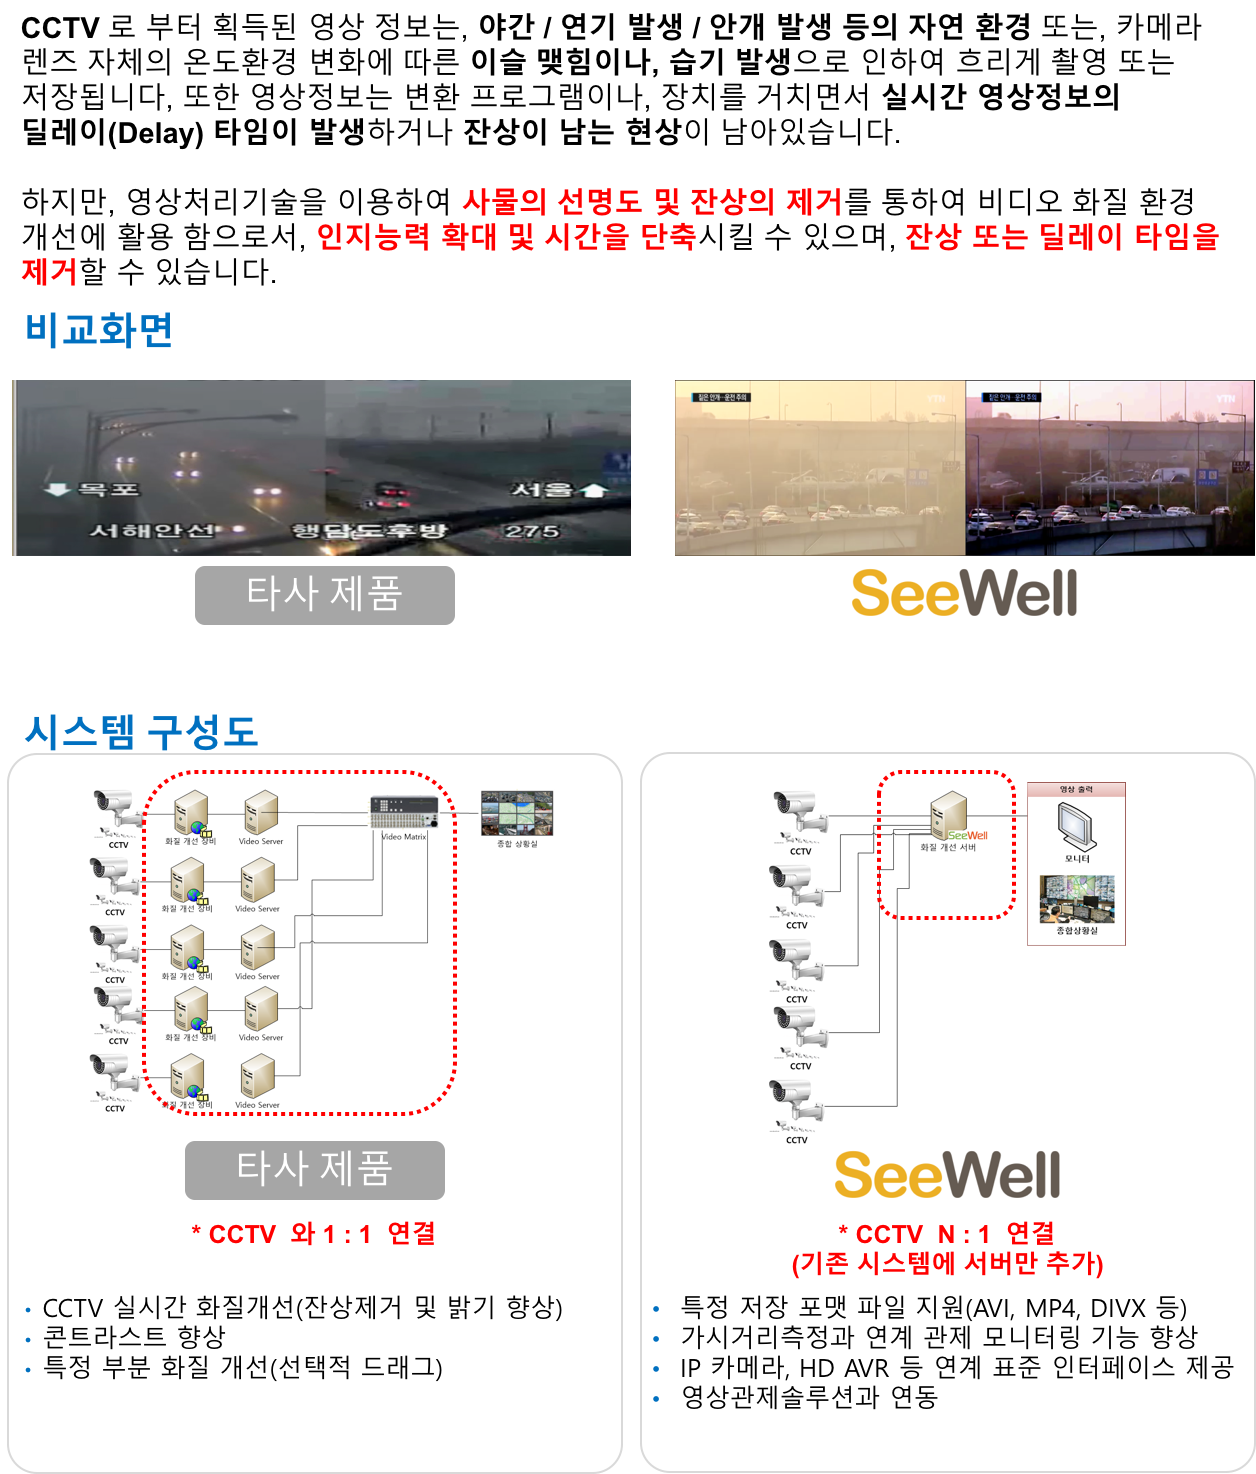 http://www.withnts.com/images/rk-0144/sub/sub_img_2_17.png